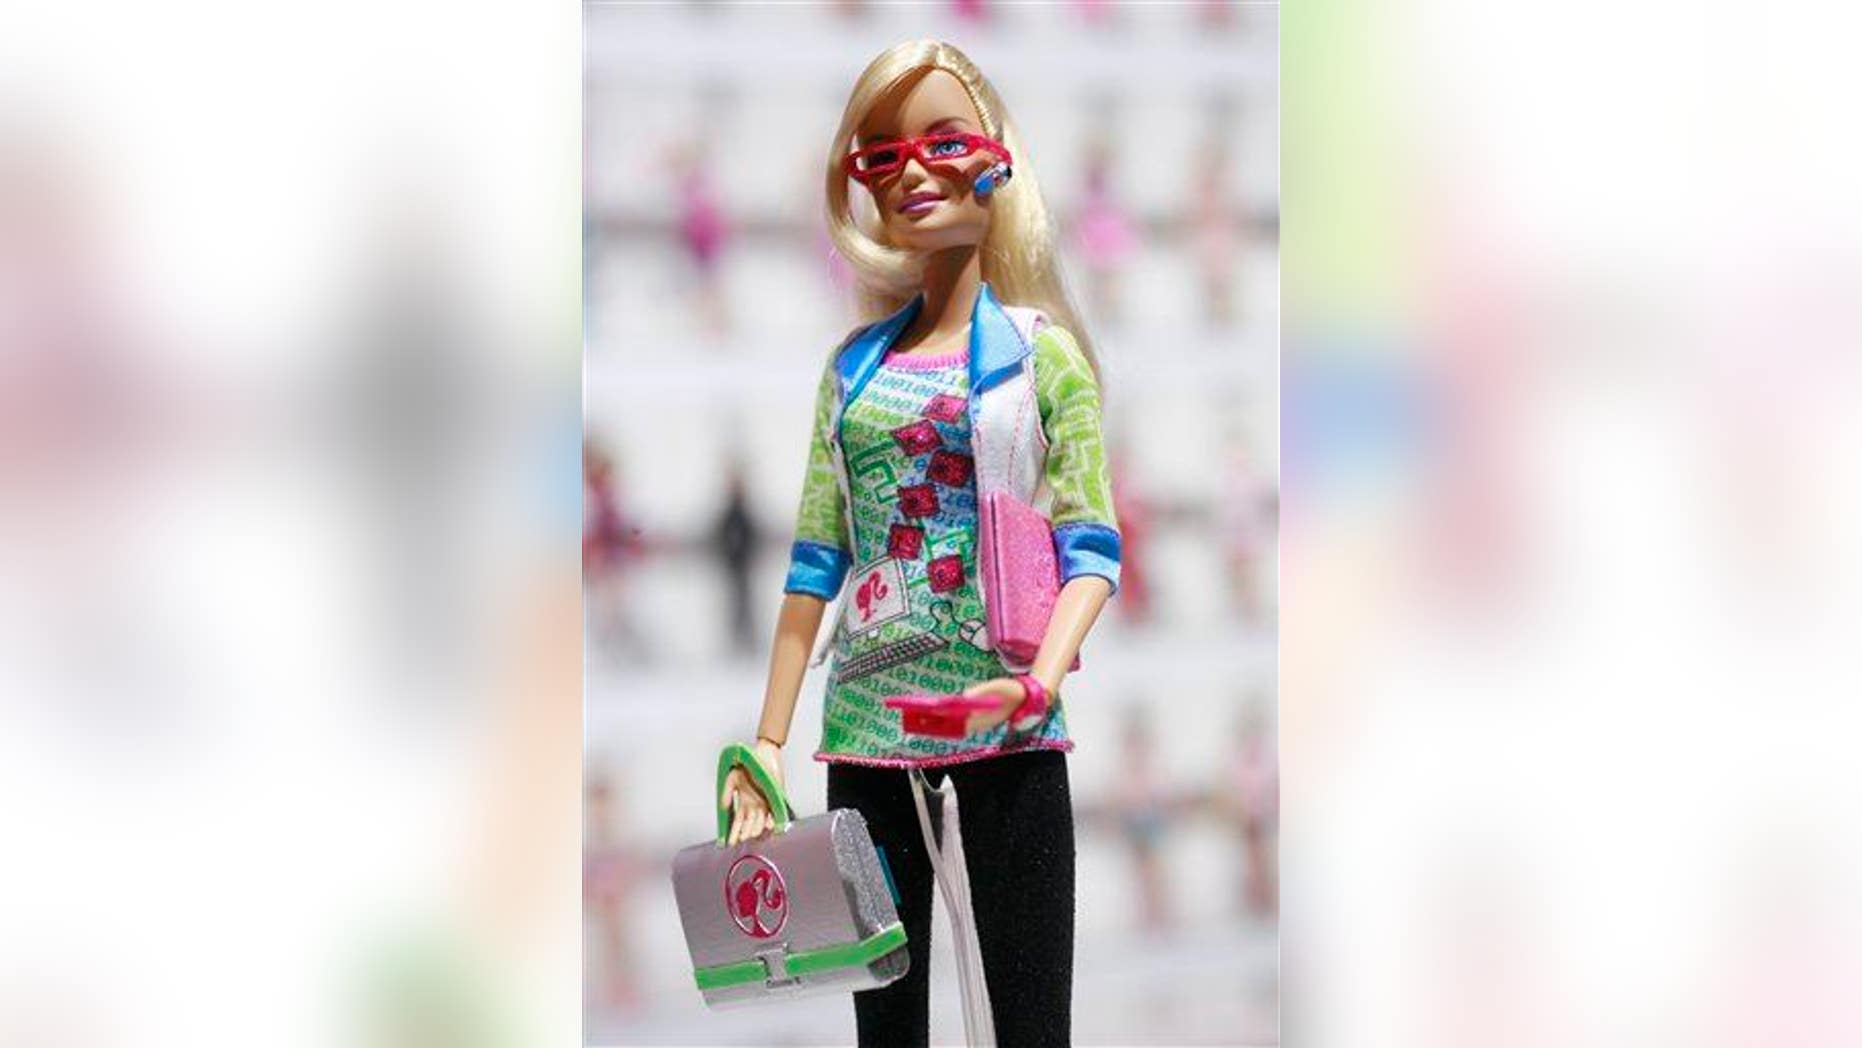 Computer Engineer Barbie is shown Feb. 12, 2010, at the New York Toy Fair.